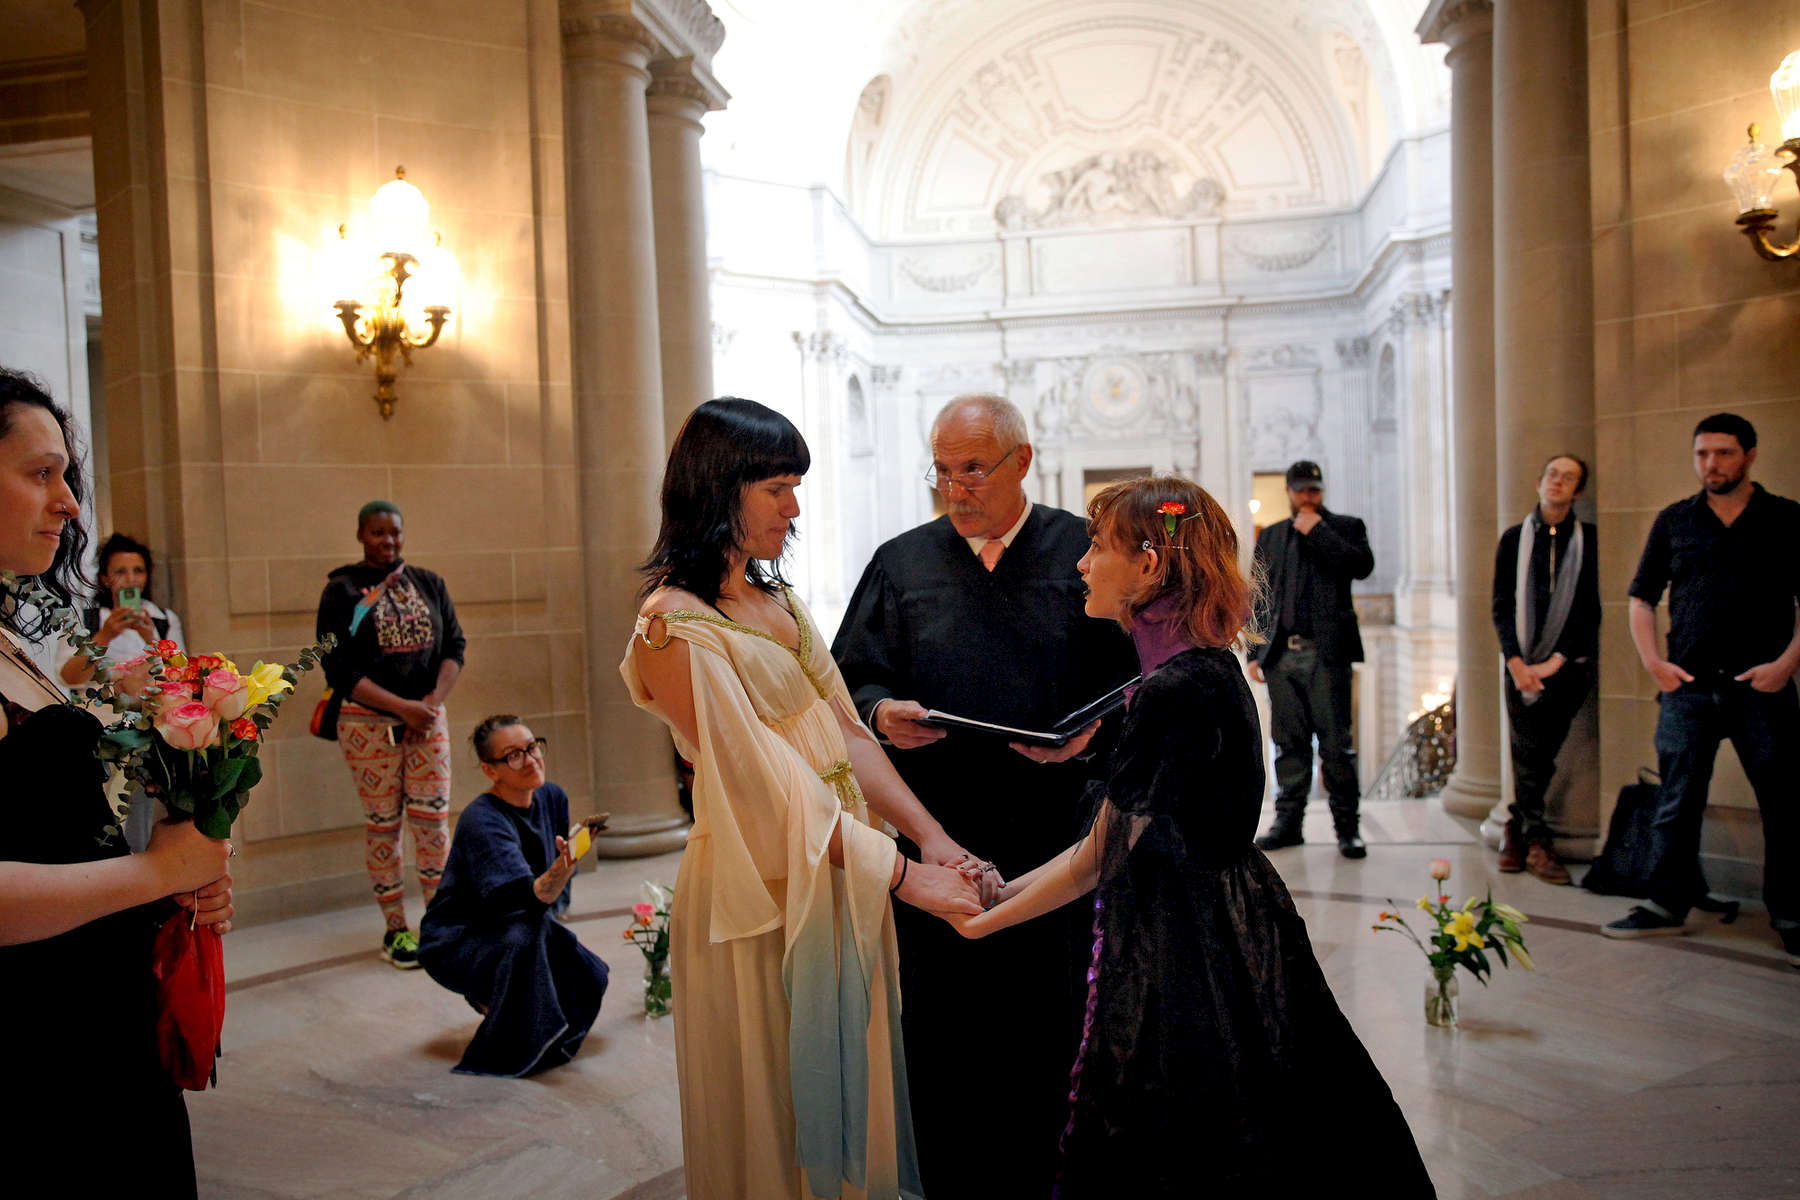 Isabella and Angel Morales get married surrounded by friends at City Hall in San Francisco, Calif., on Wednesday, October 28, 2015. {quote}All her walls came down for a moment and so did mine, to build around each other,{quote} Isabella said of the experience. {quote}I realized, at that moment, that I was completed. And it takes a lot for people who are broken and who have been hurt by the wrong people before to feel completed.{quote}(Photo by Preston Gannaway © 2015)